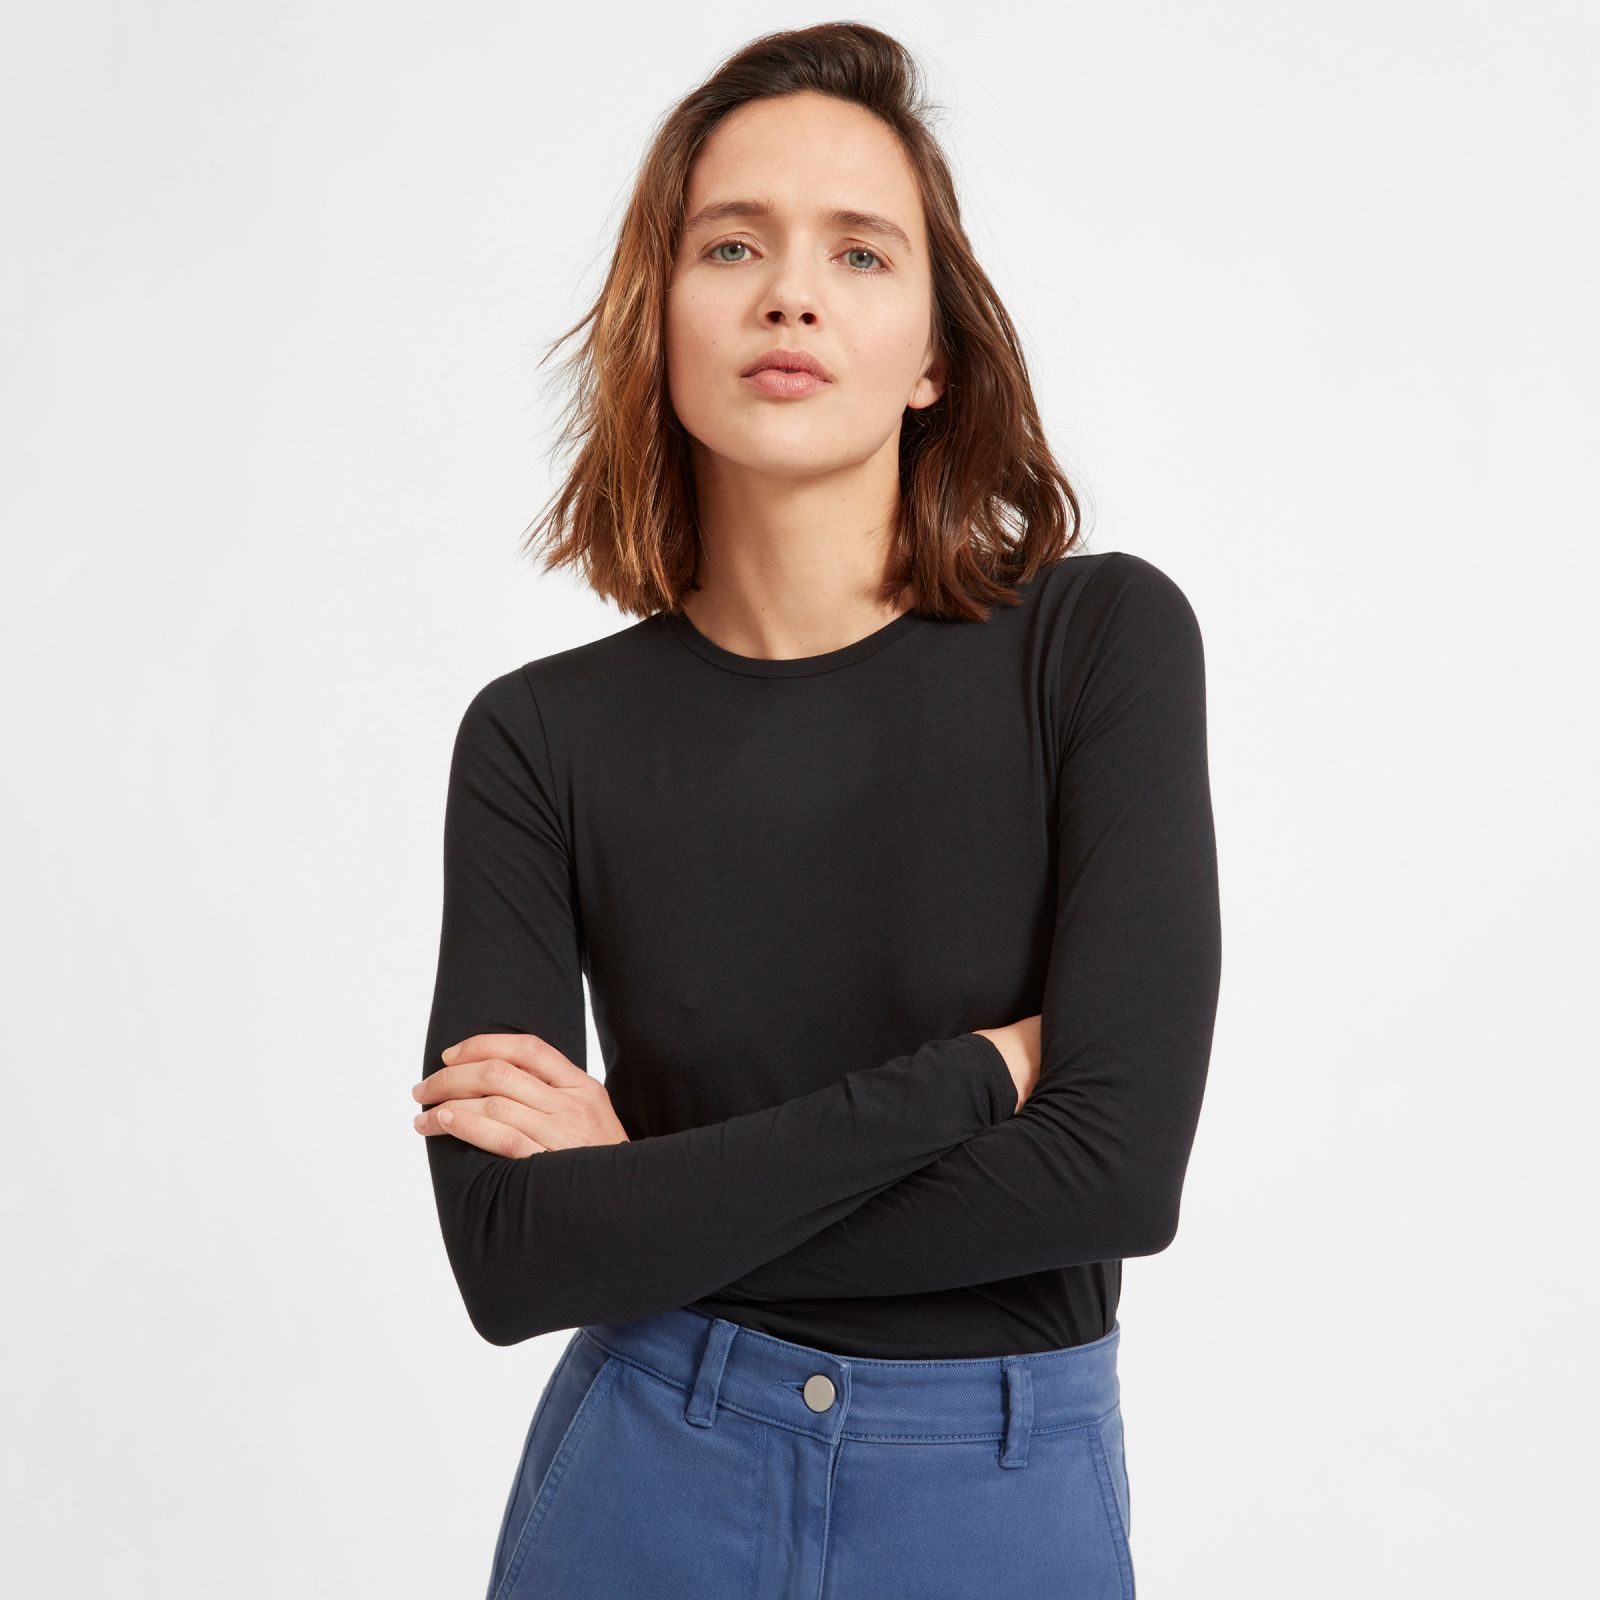 women's pima stretch long-sleeve t-shirt by everlane in black, size l